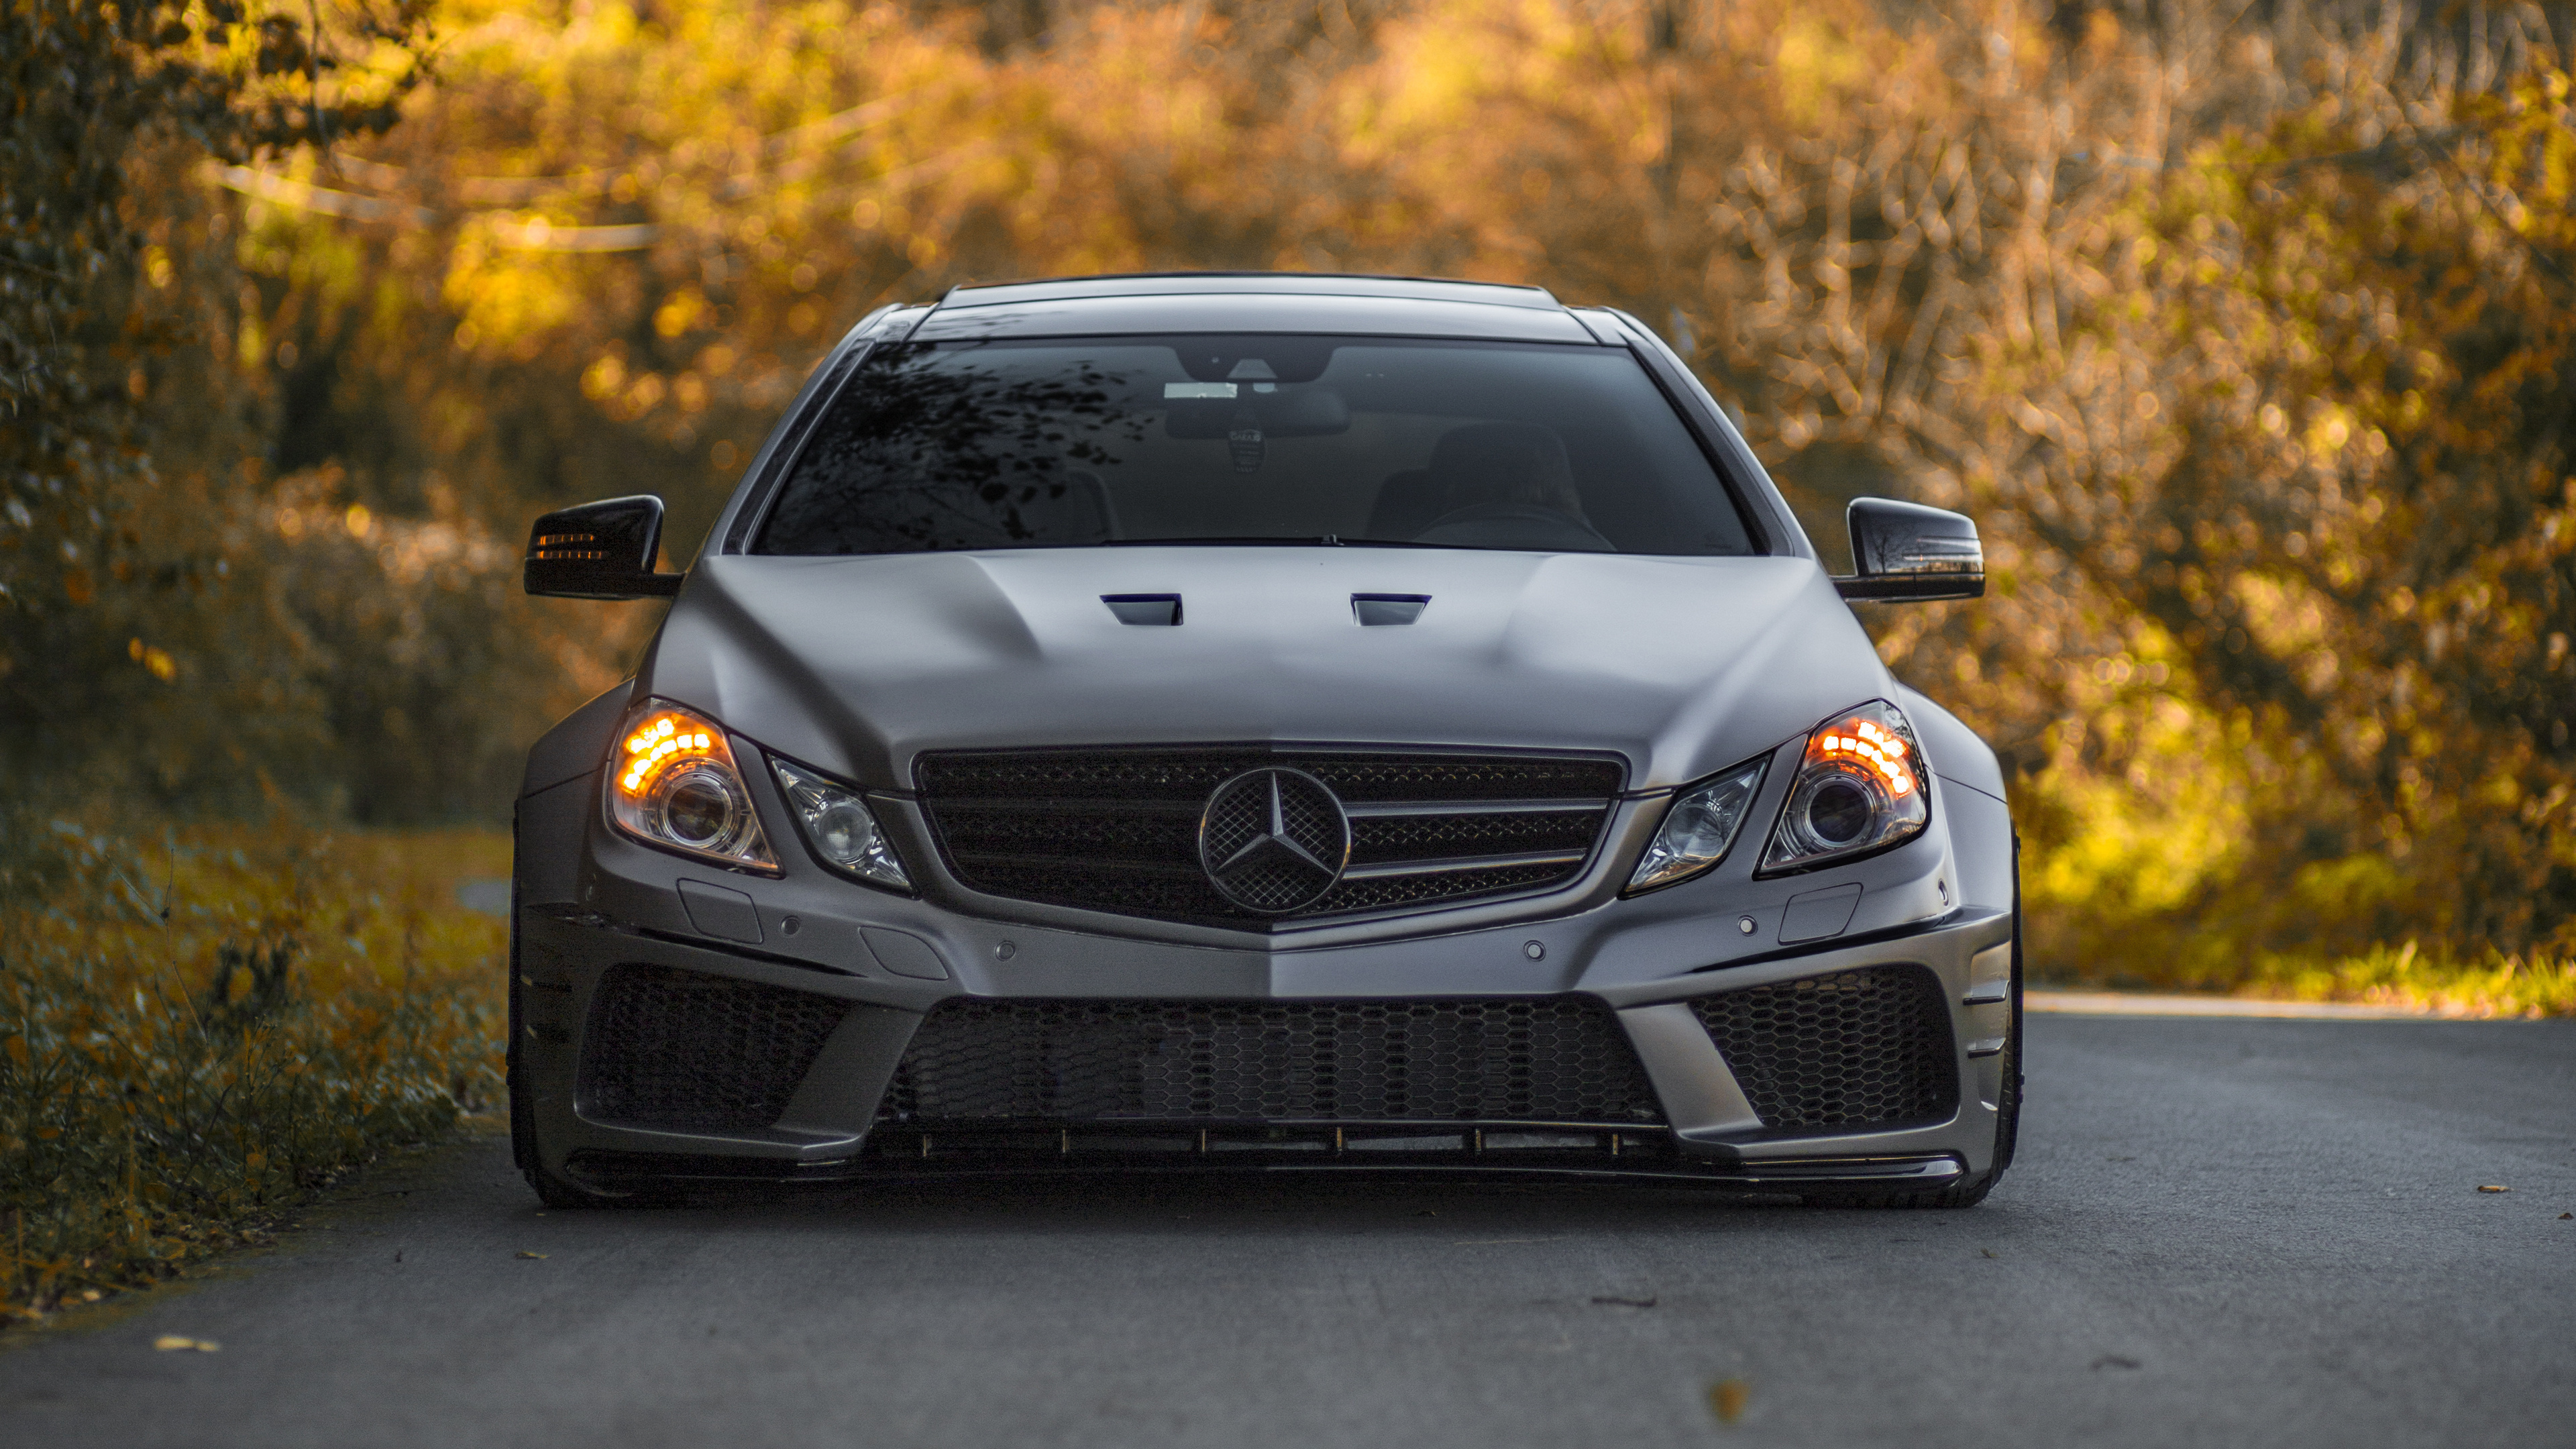 Download 3840x2160 Mercedes Benz E63 Amg 4matic Cars